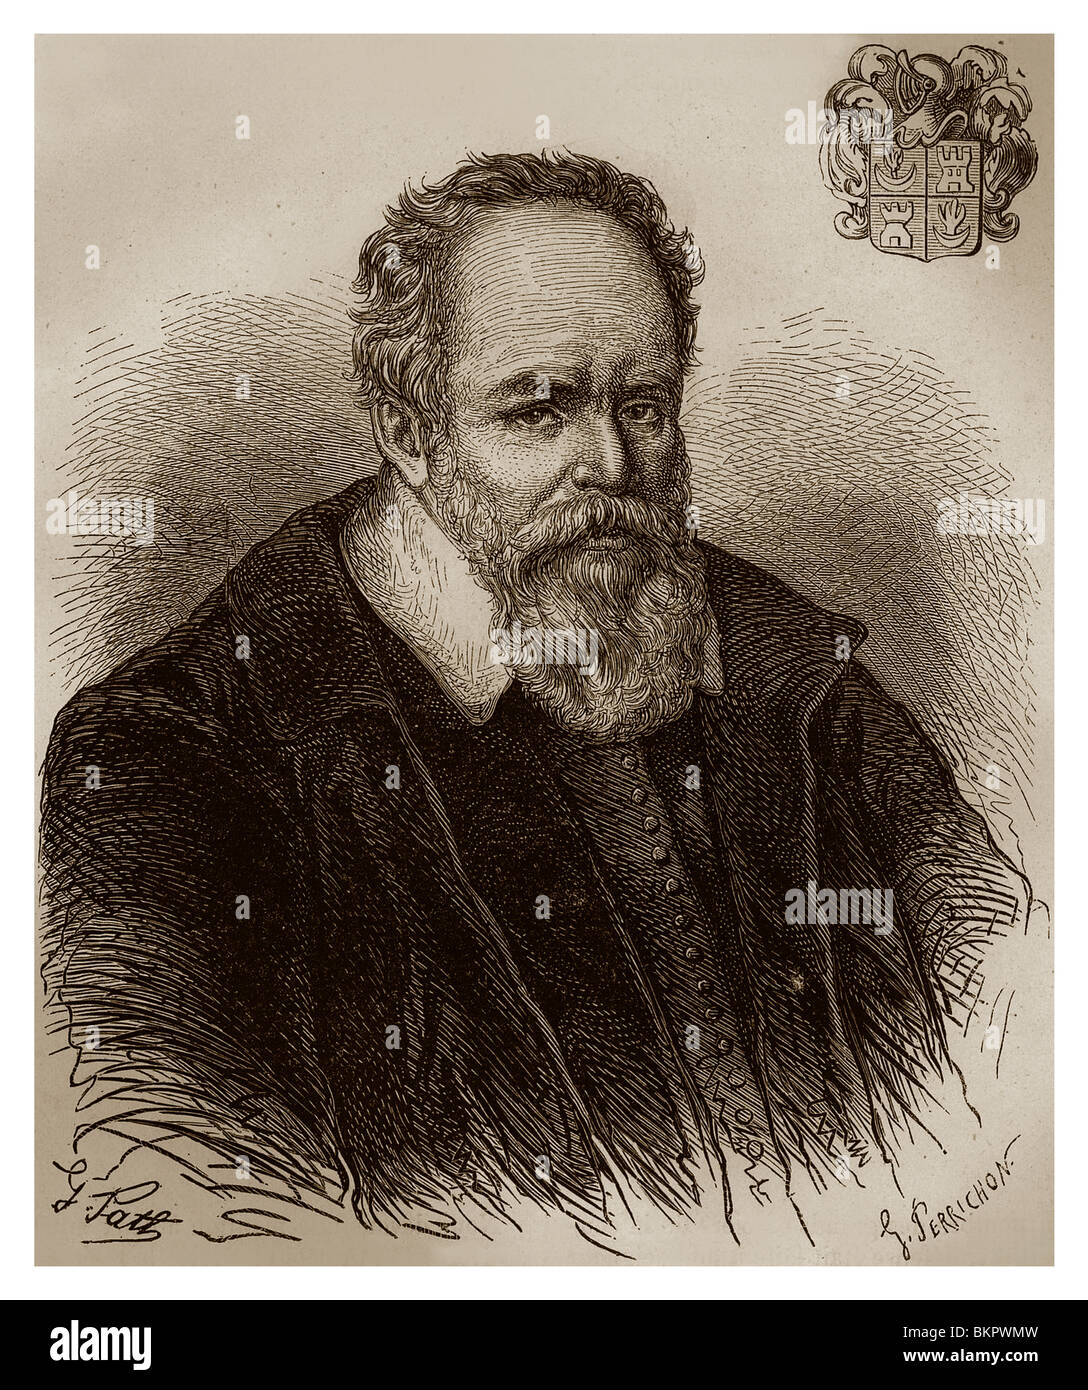 Pierre Jeannin, known as President Jeannin (1540-1623): French jurist, writer and adviser of King Henry IV of France. - Stock Image